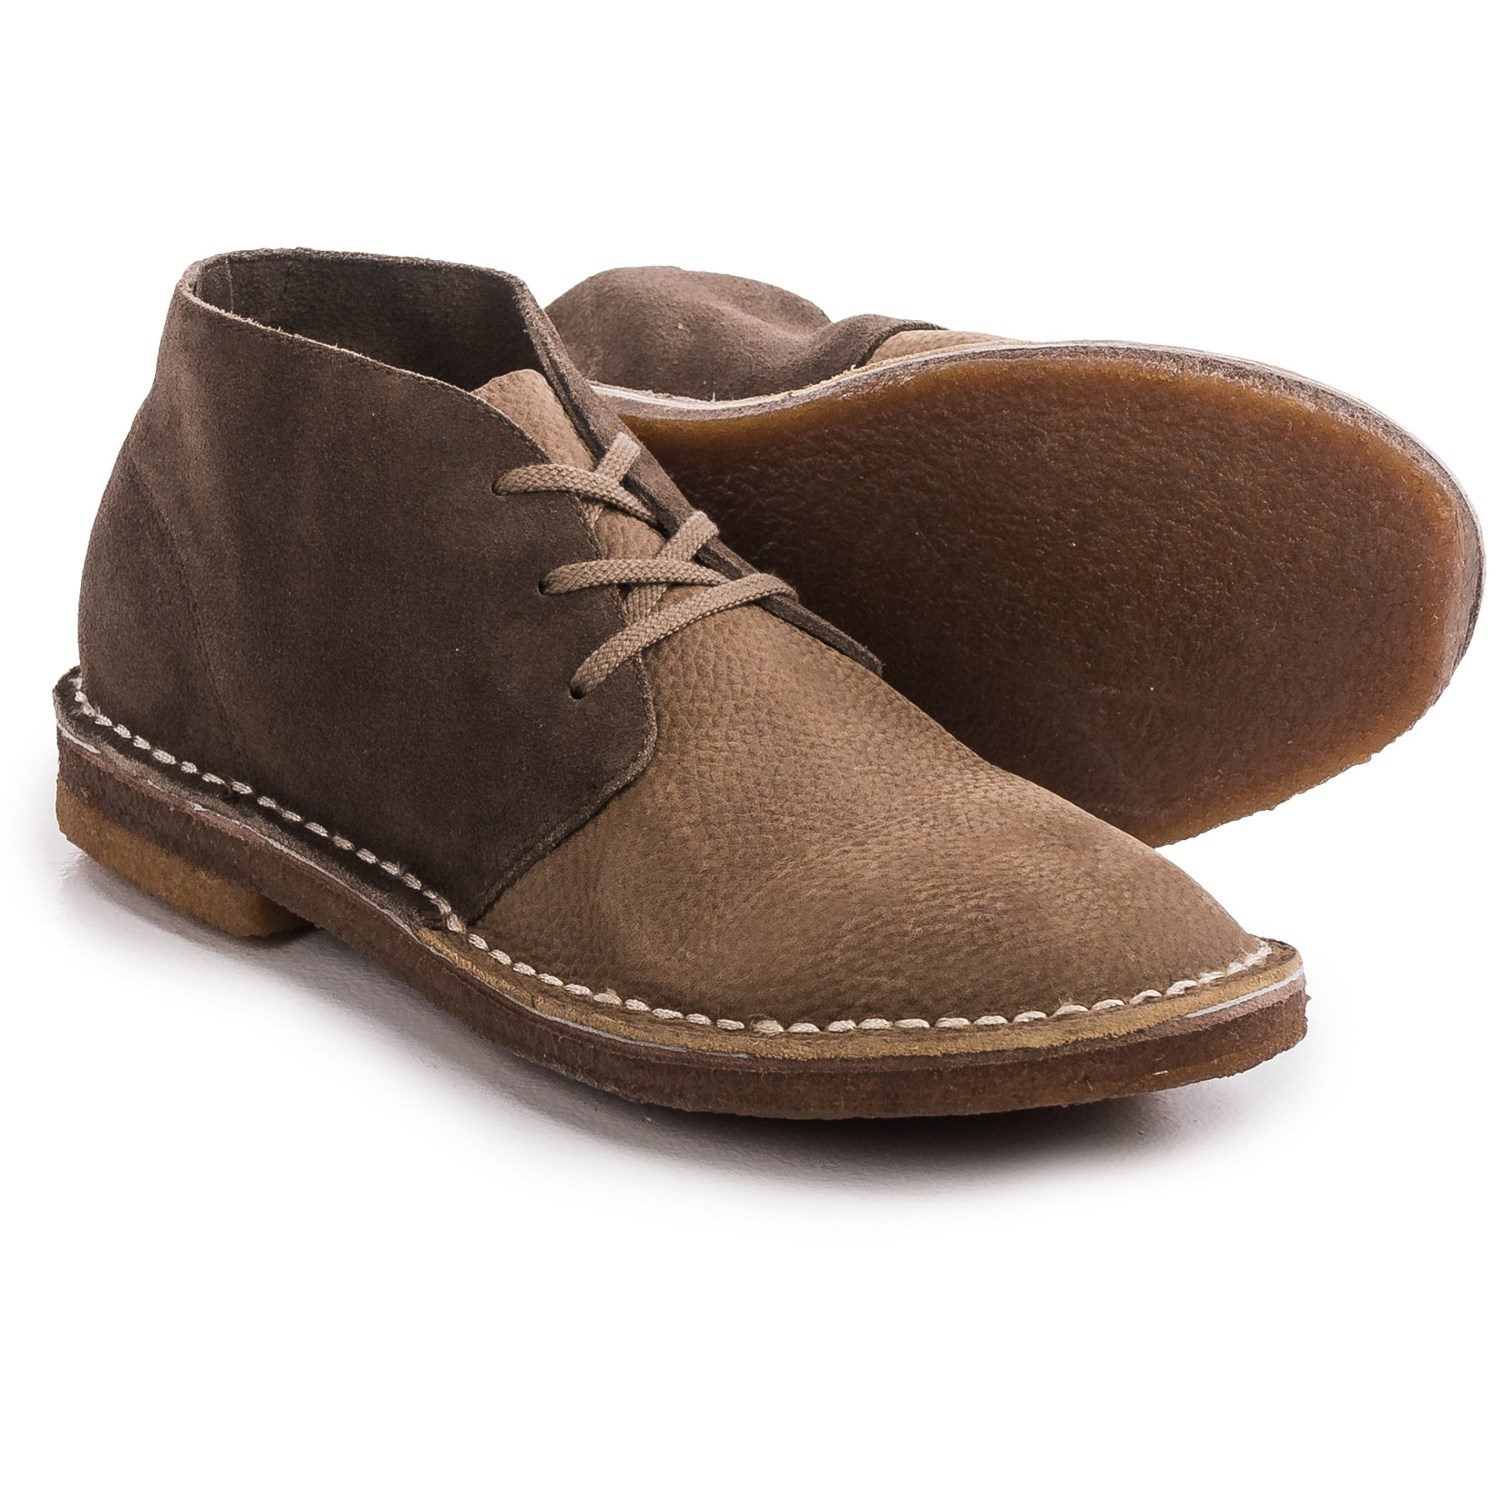 Seavees 12 67 Leather Chukka Boots For Men 108hk Save 77